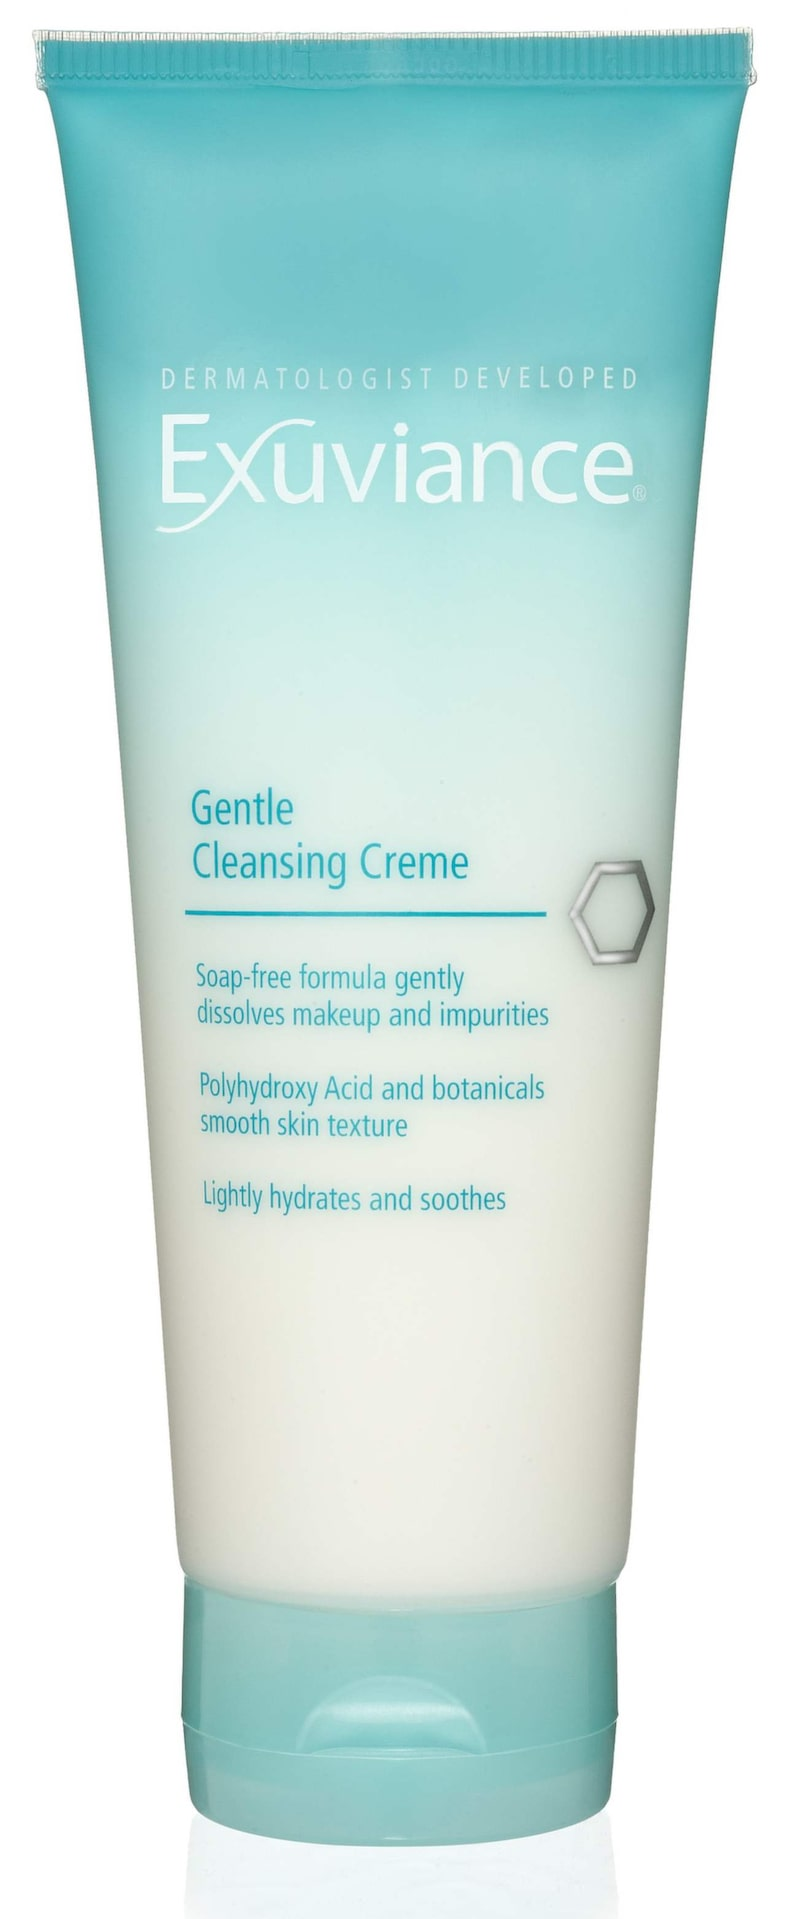 Gentle Cleansing Creme från Exuviance, 299 kronor.